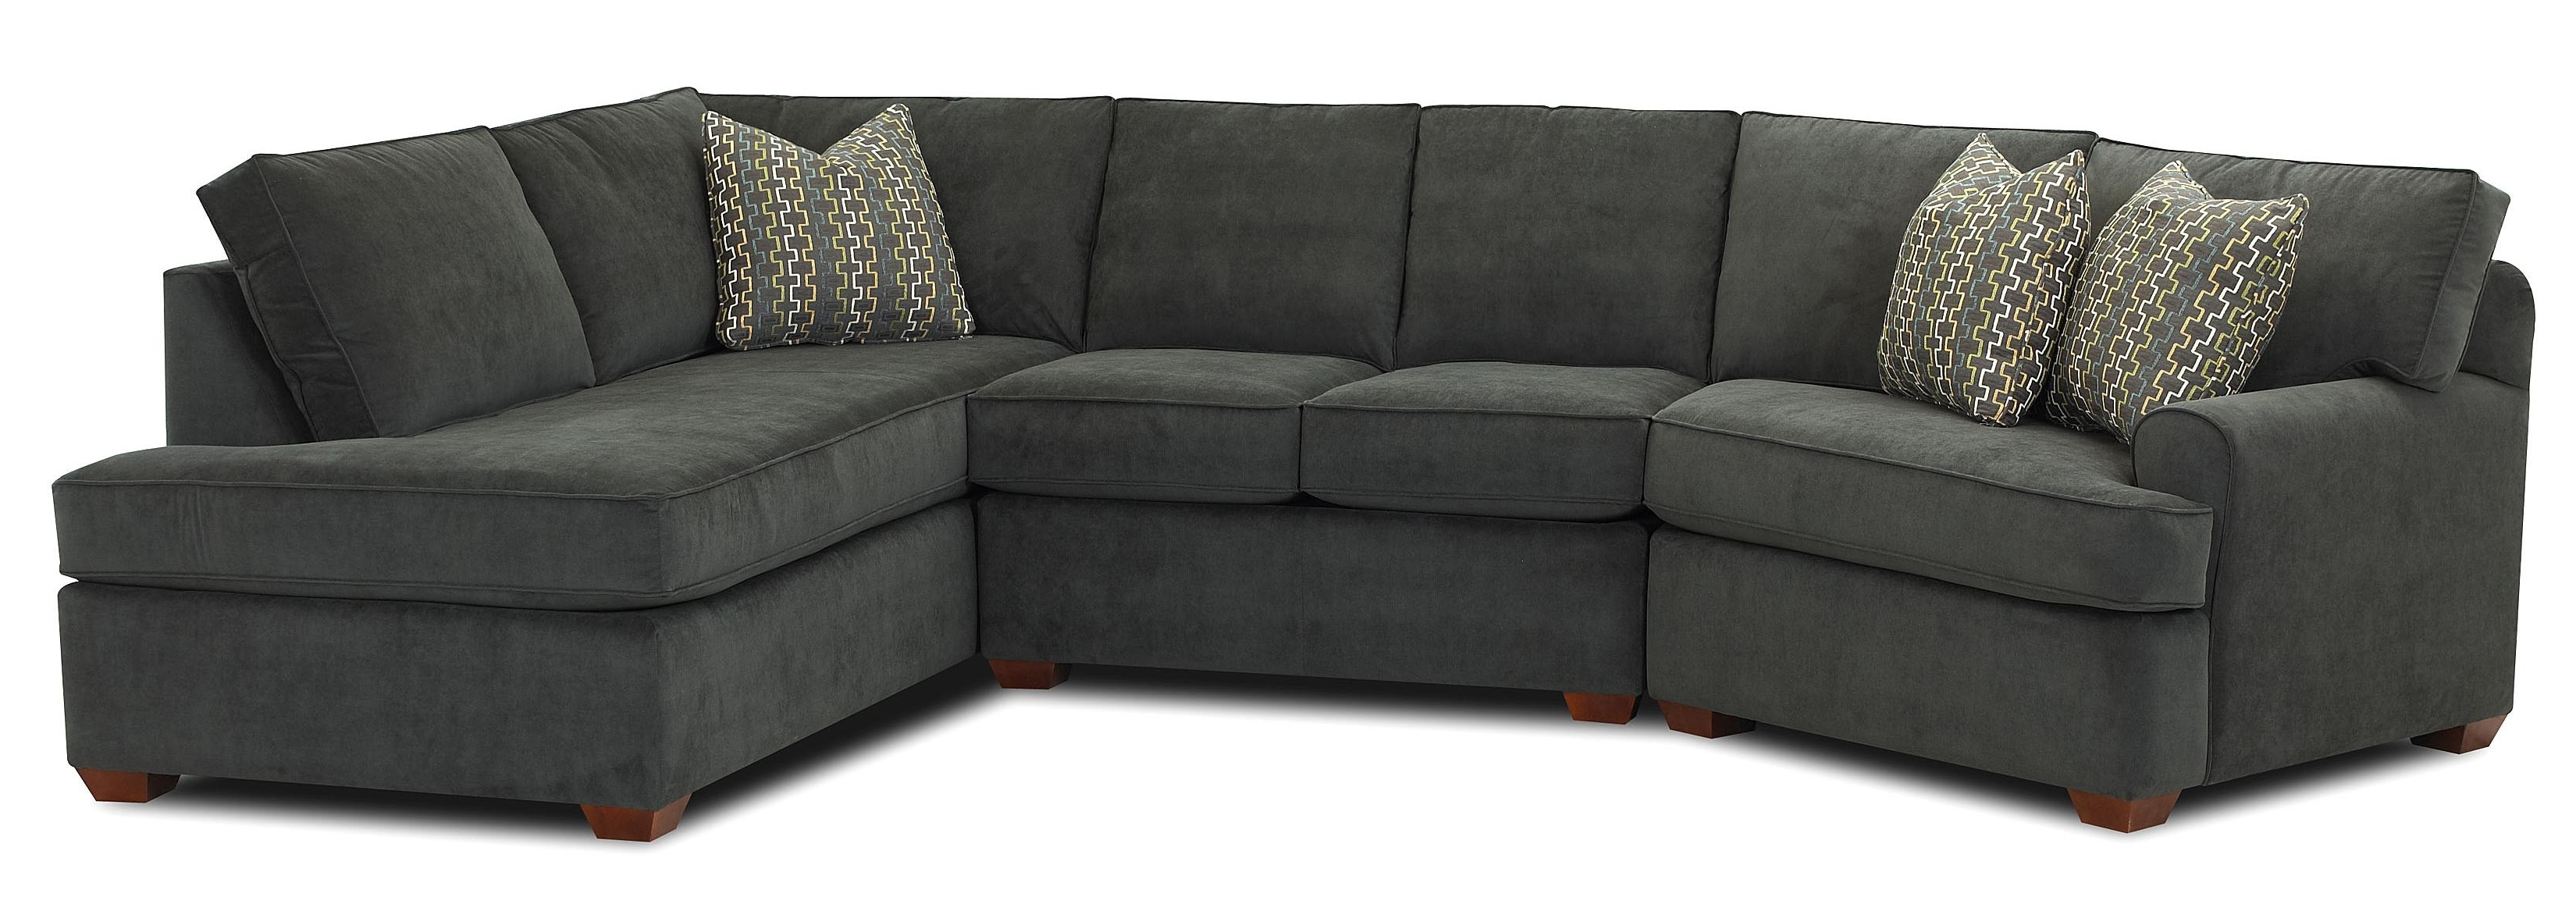 Wolf In Green Sectional Sofas With Chaise (View 13 of 20)